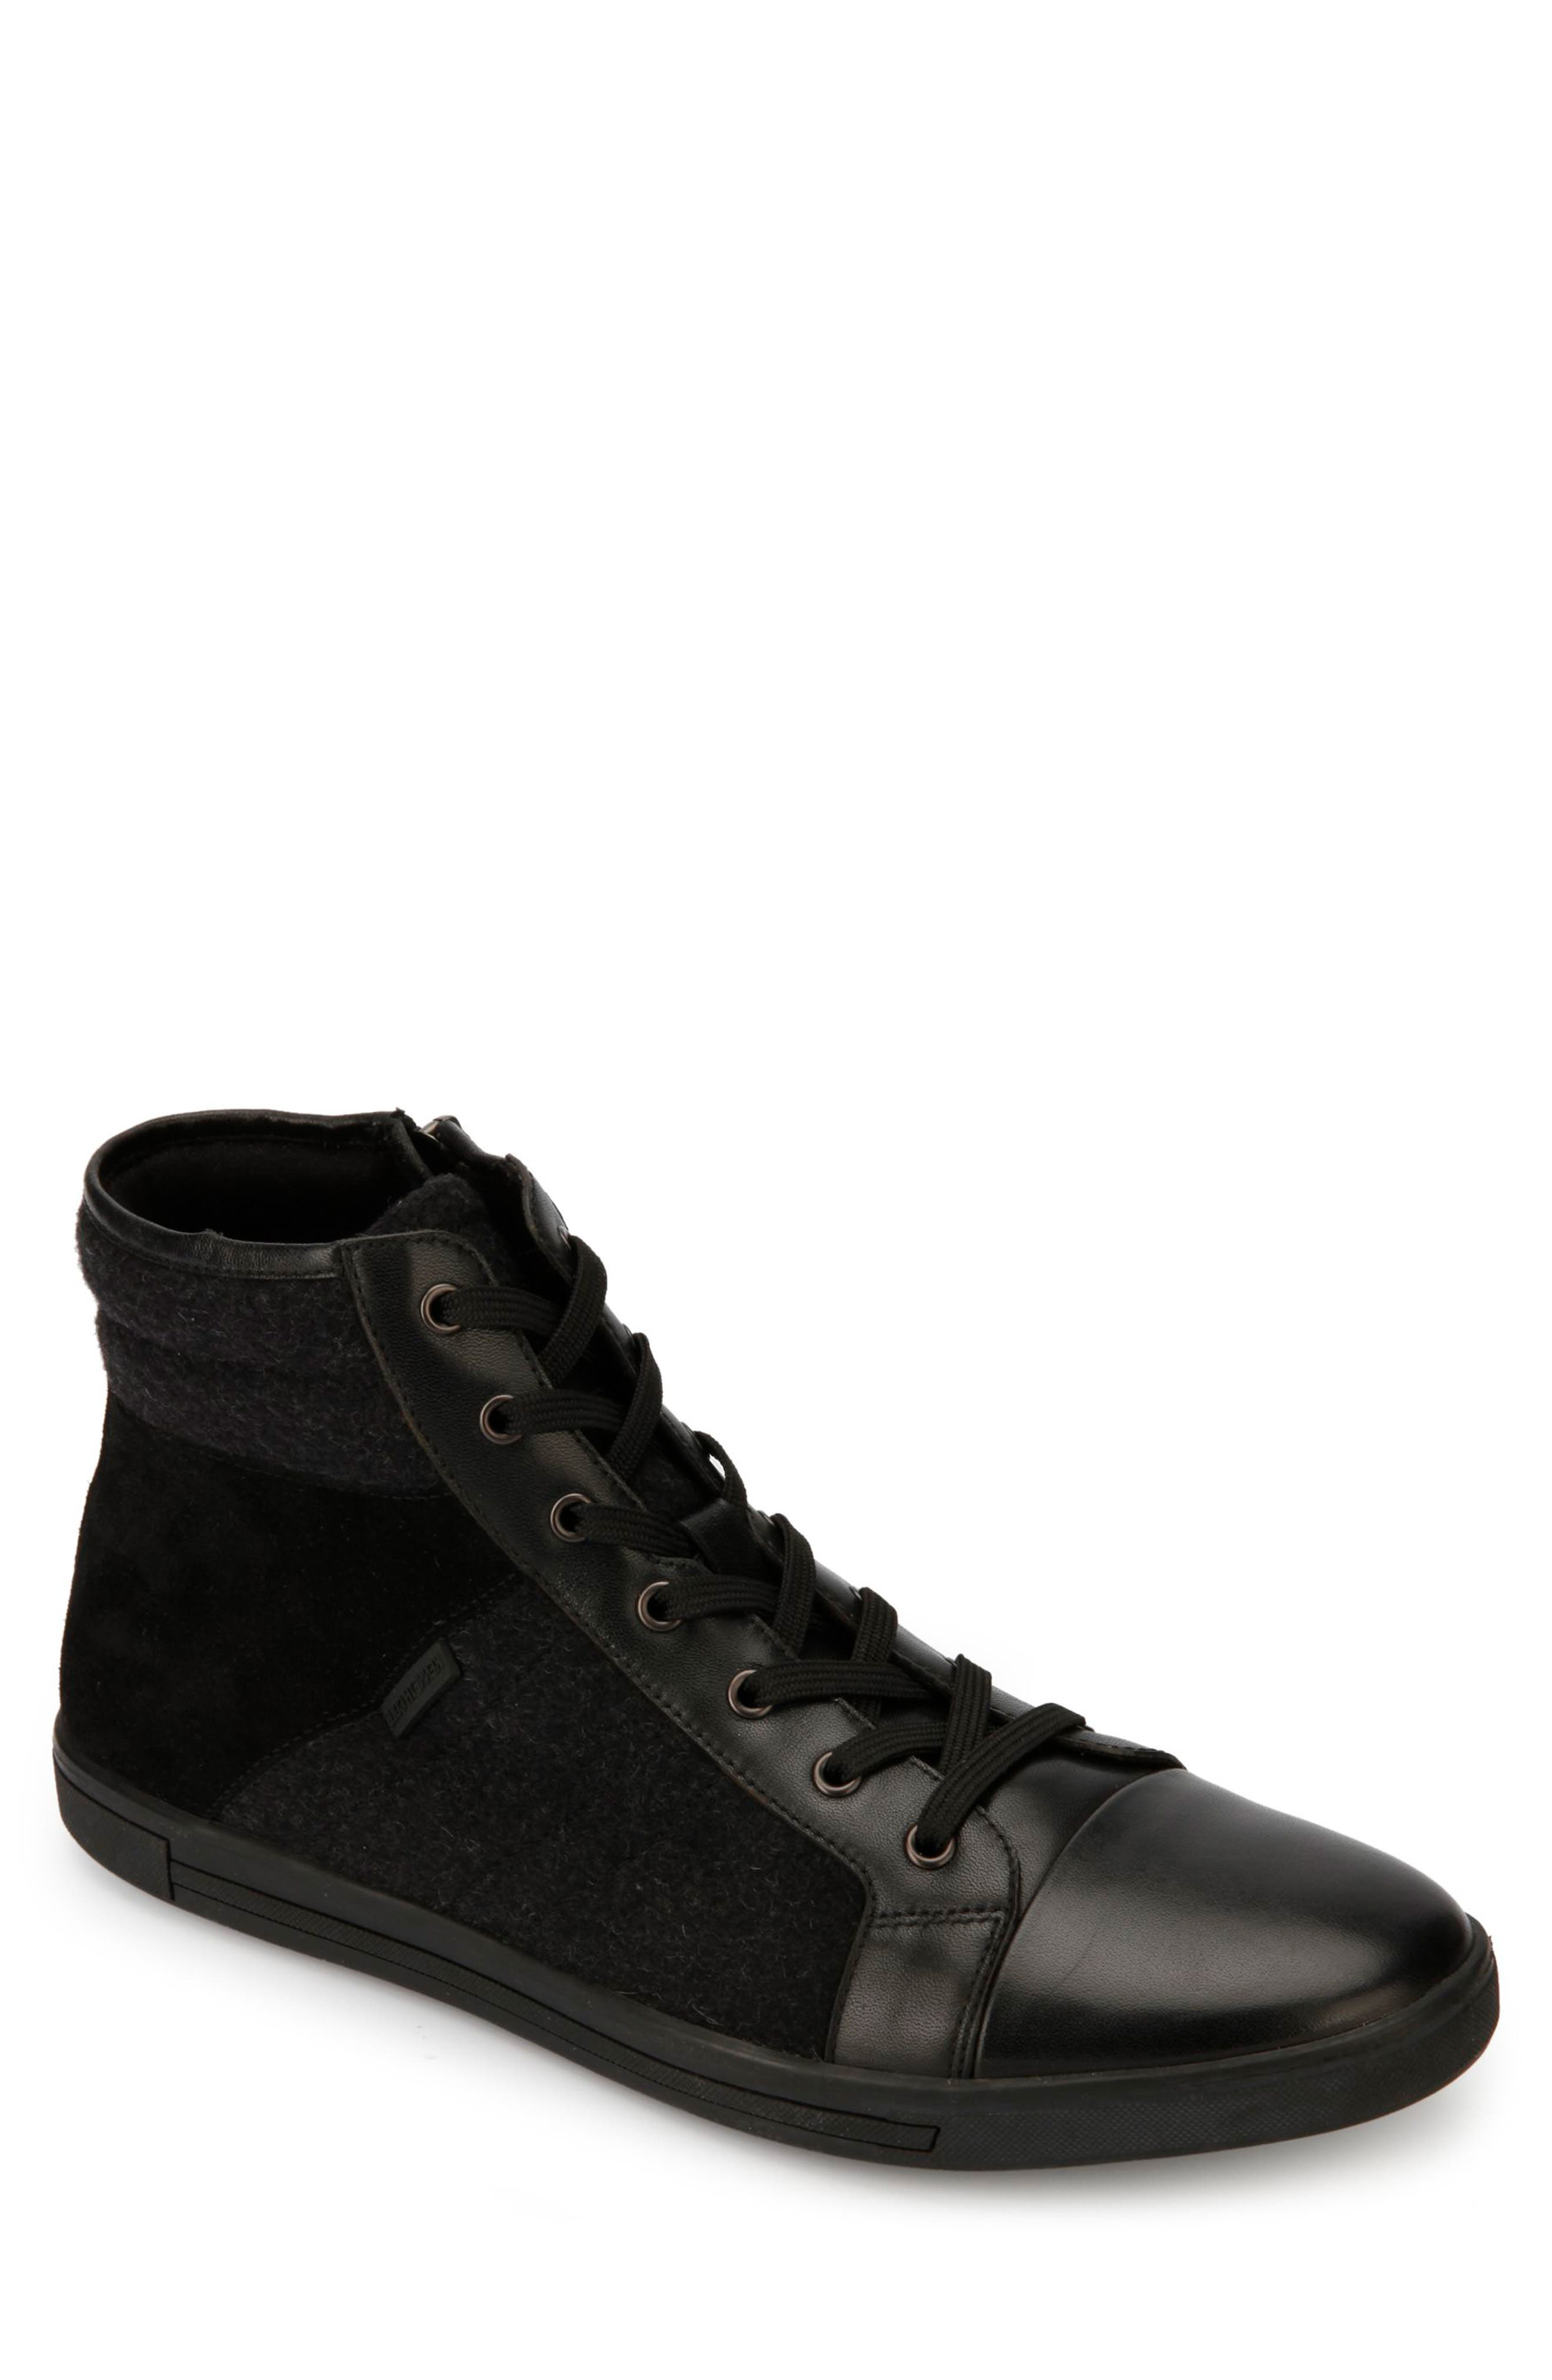 Initial Point Sneaker,                         Main,                         color, 008